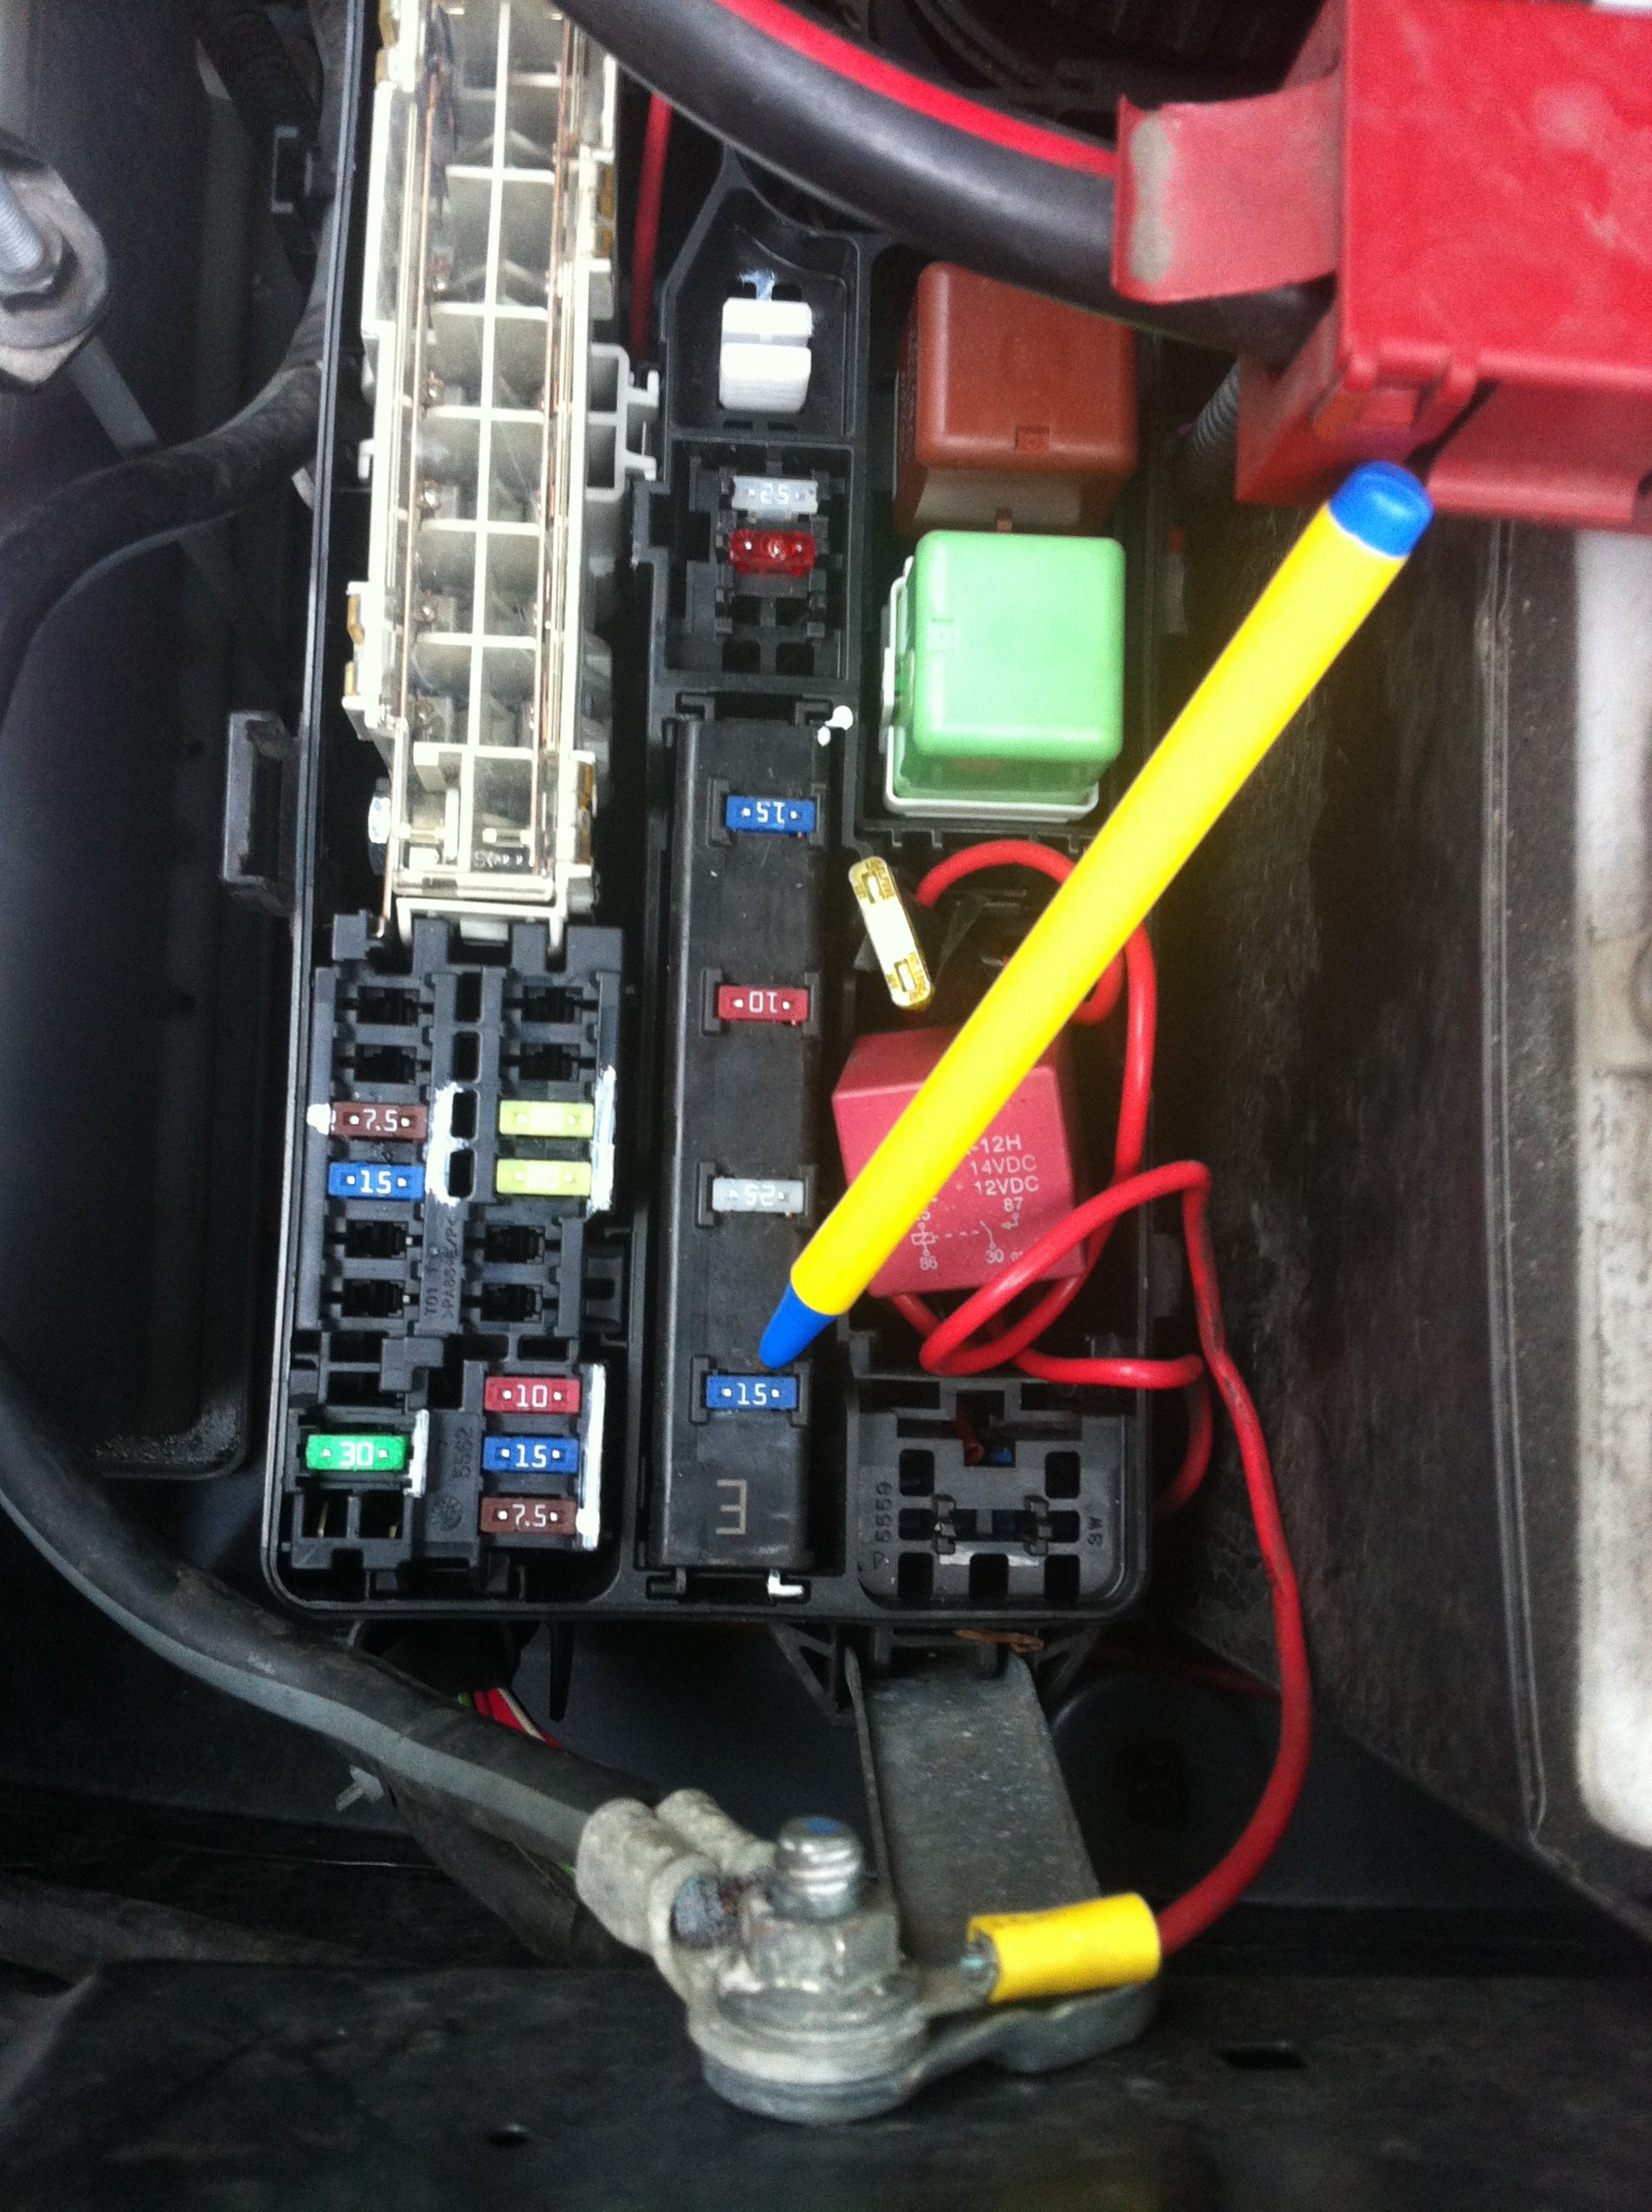 2005 Ford Escape Fuse Panel Diagram Also 2005 Ford Escape Fuse Box